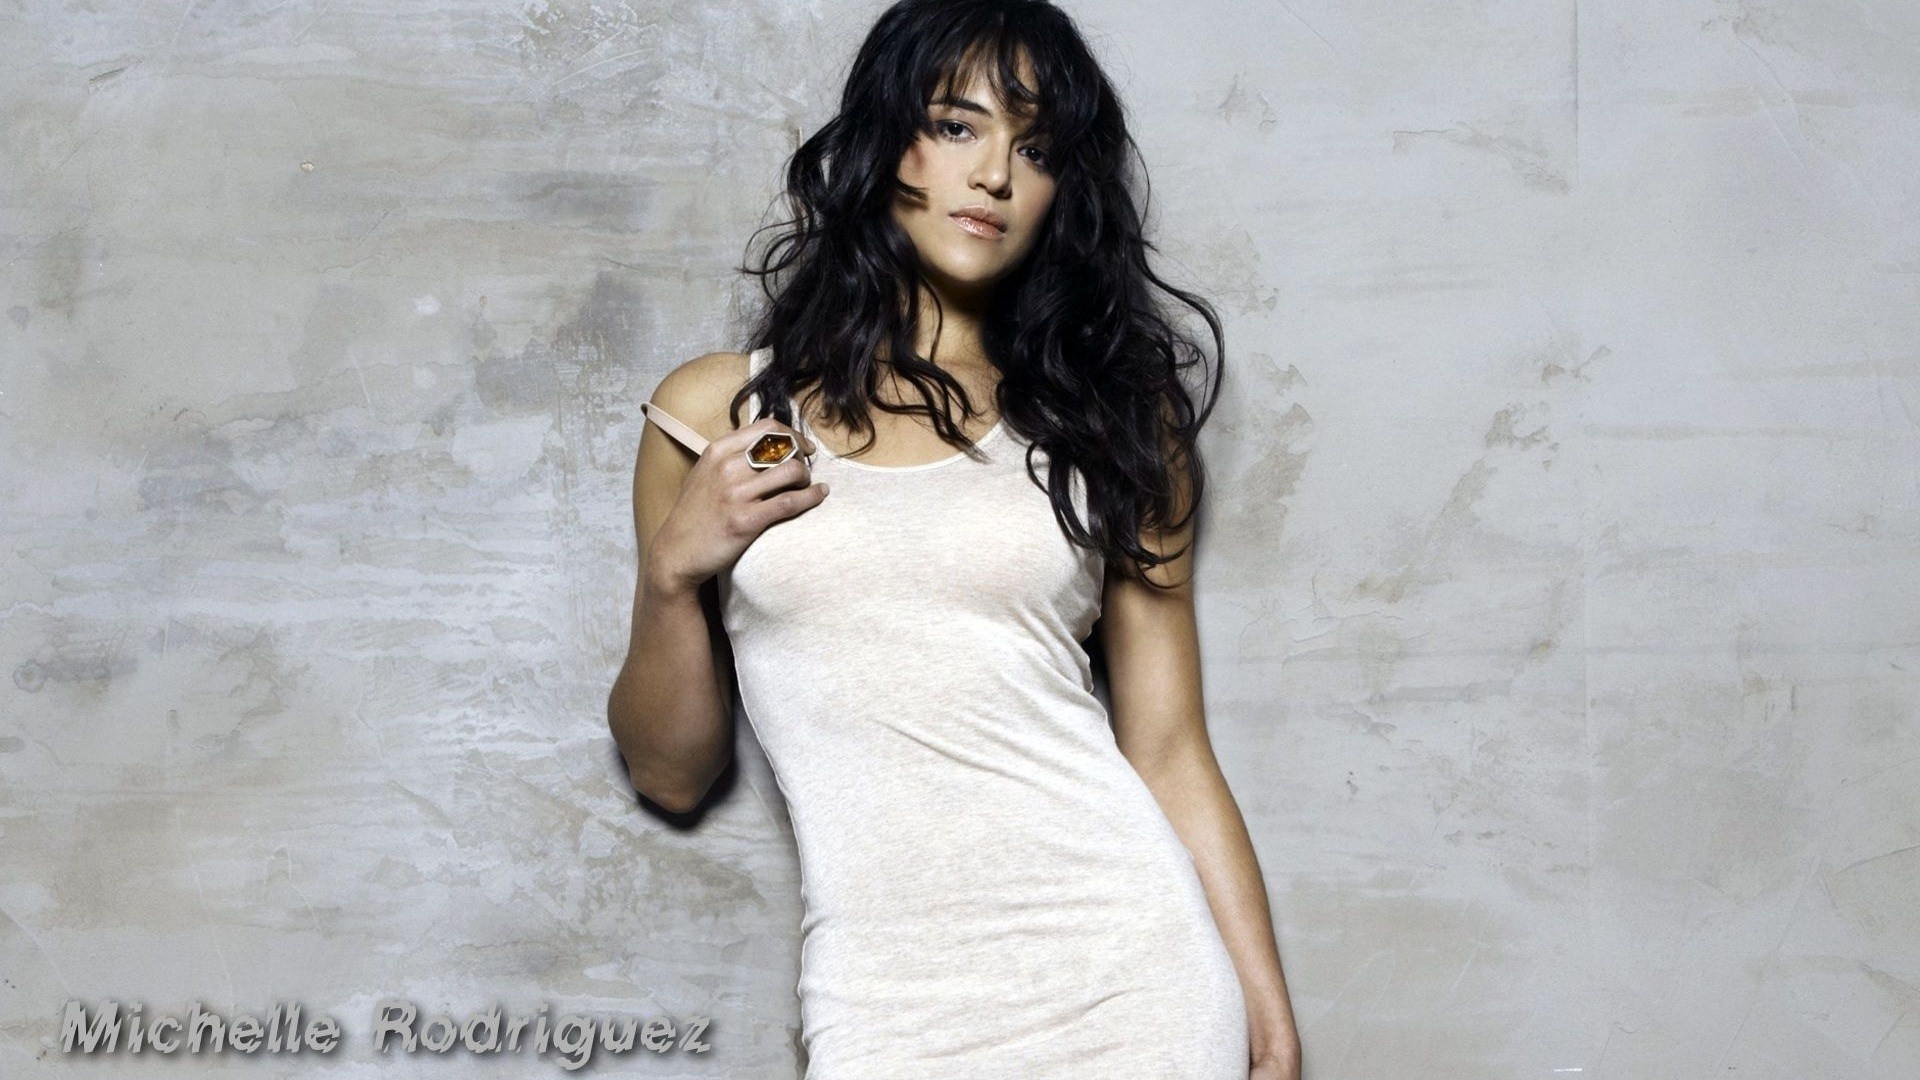 1920x1080 - Michelle Rodriguez Wallpapers 11